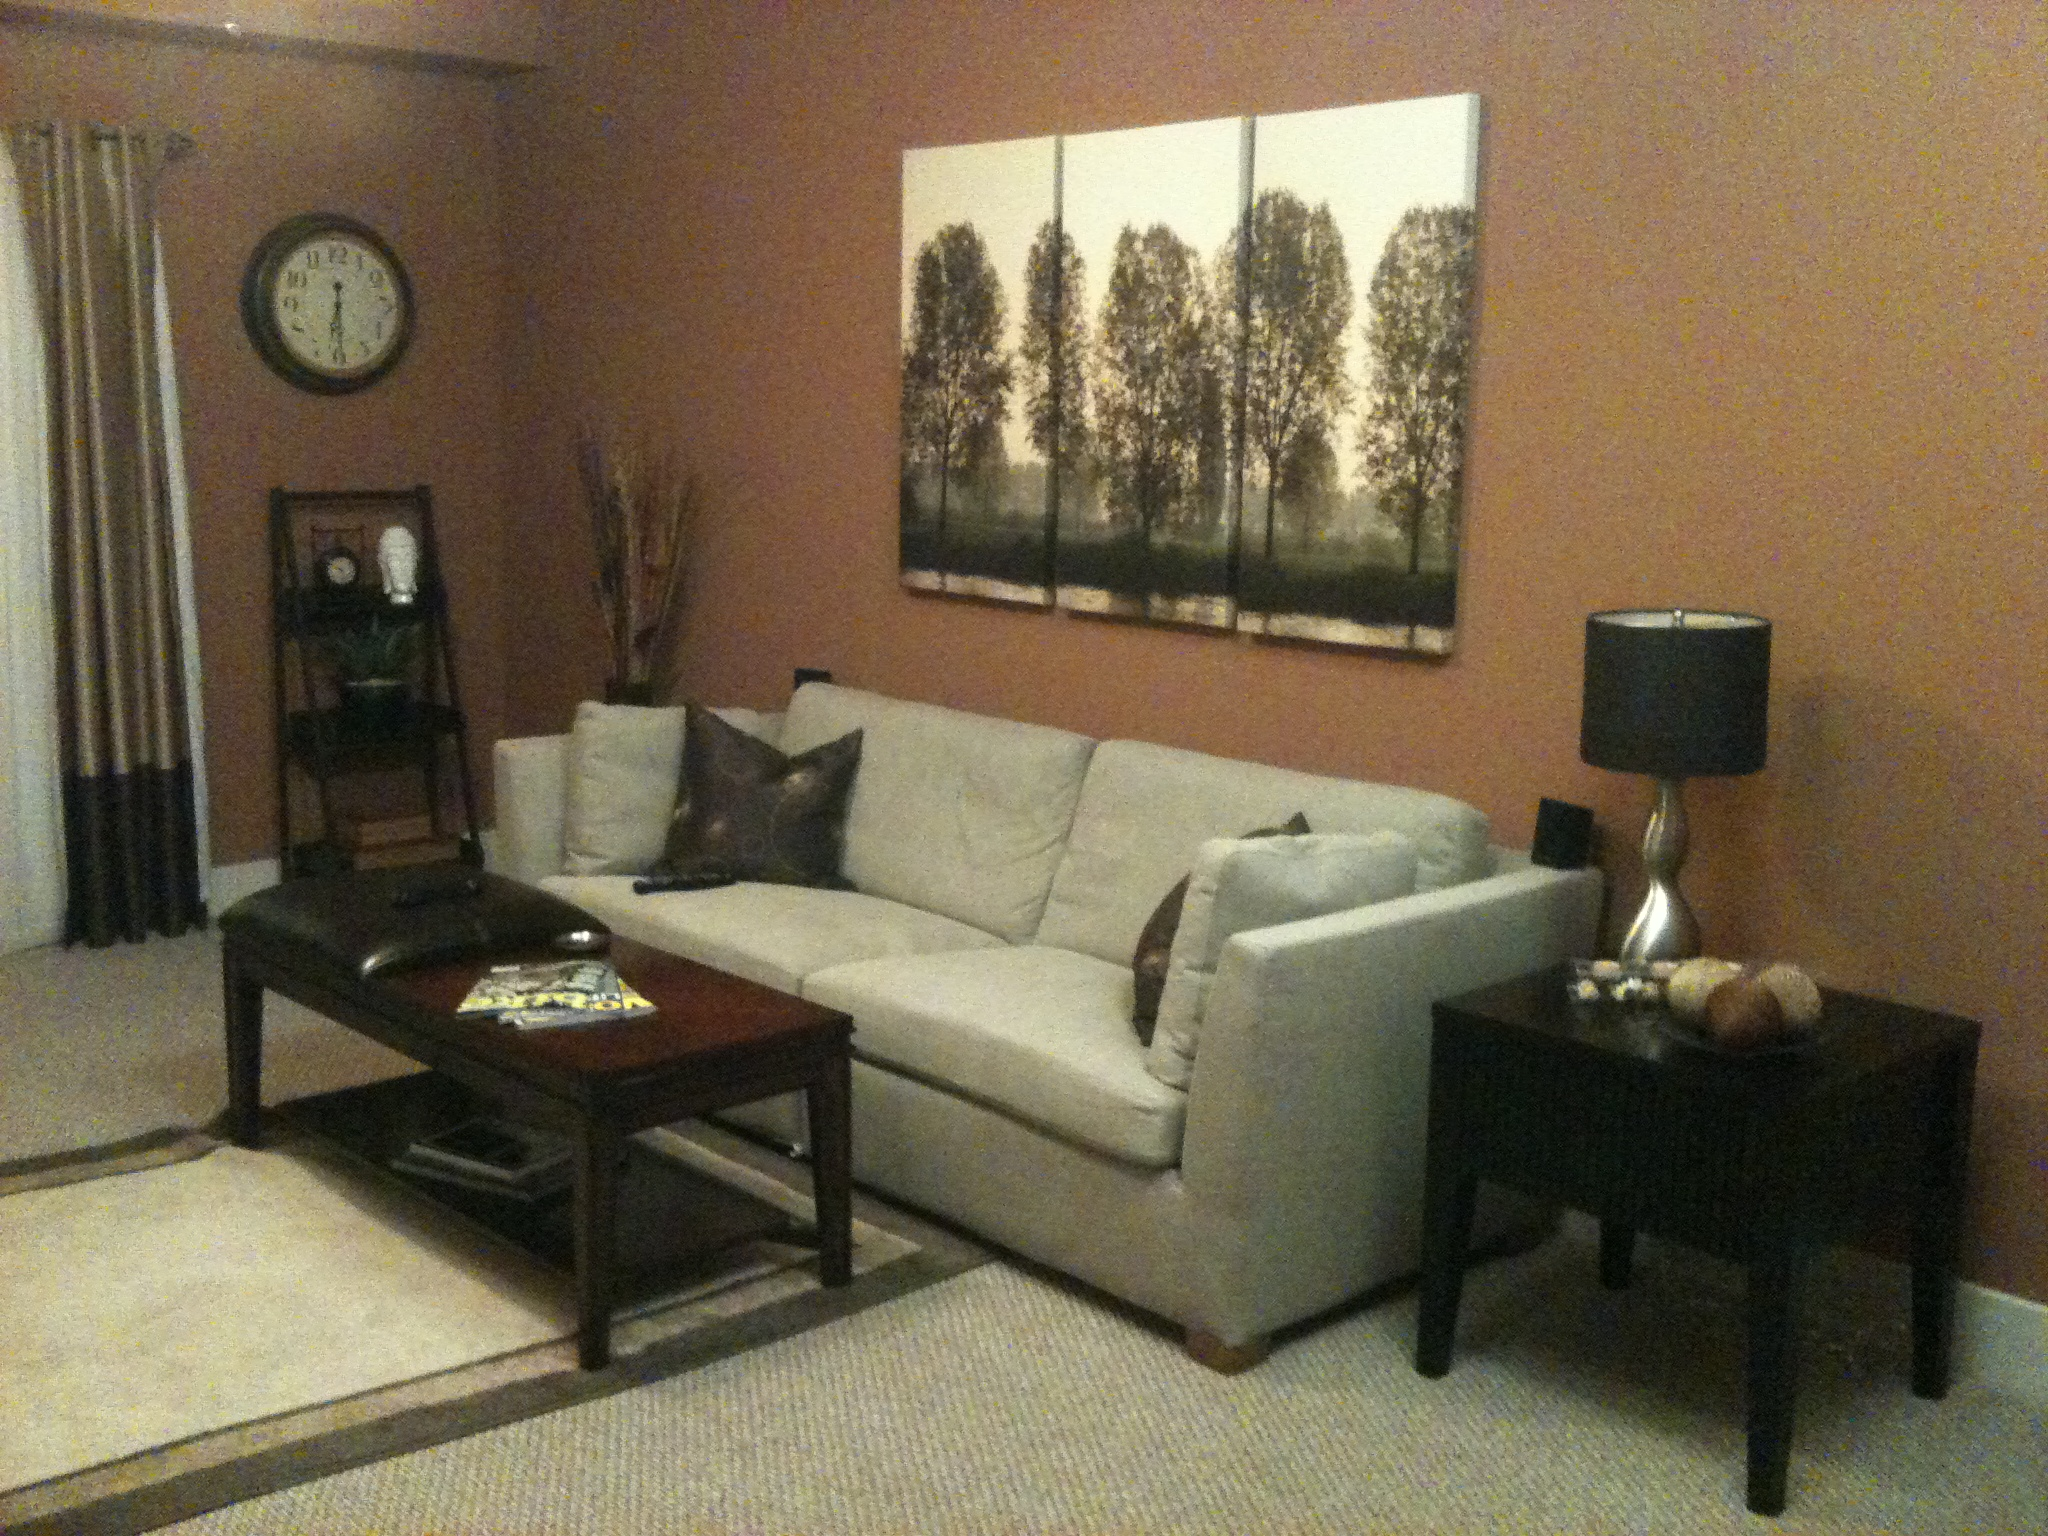 brown paint schemes for living room four chairs bachelor needs advice on color home interior living1 jpg